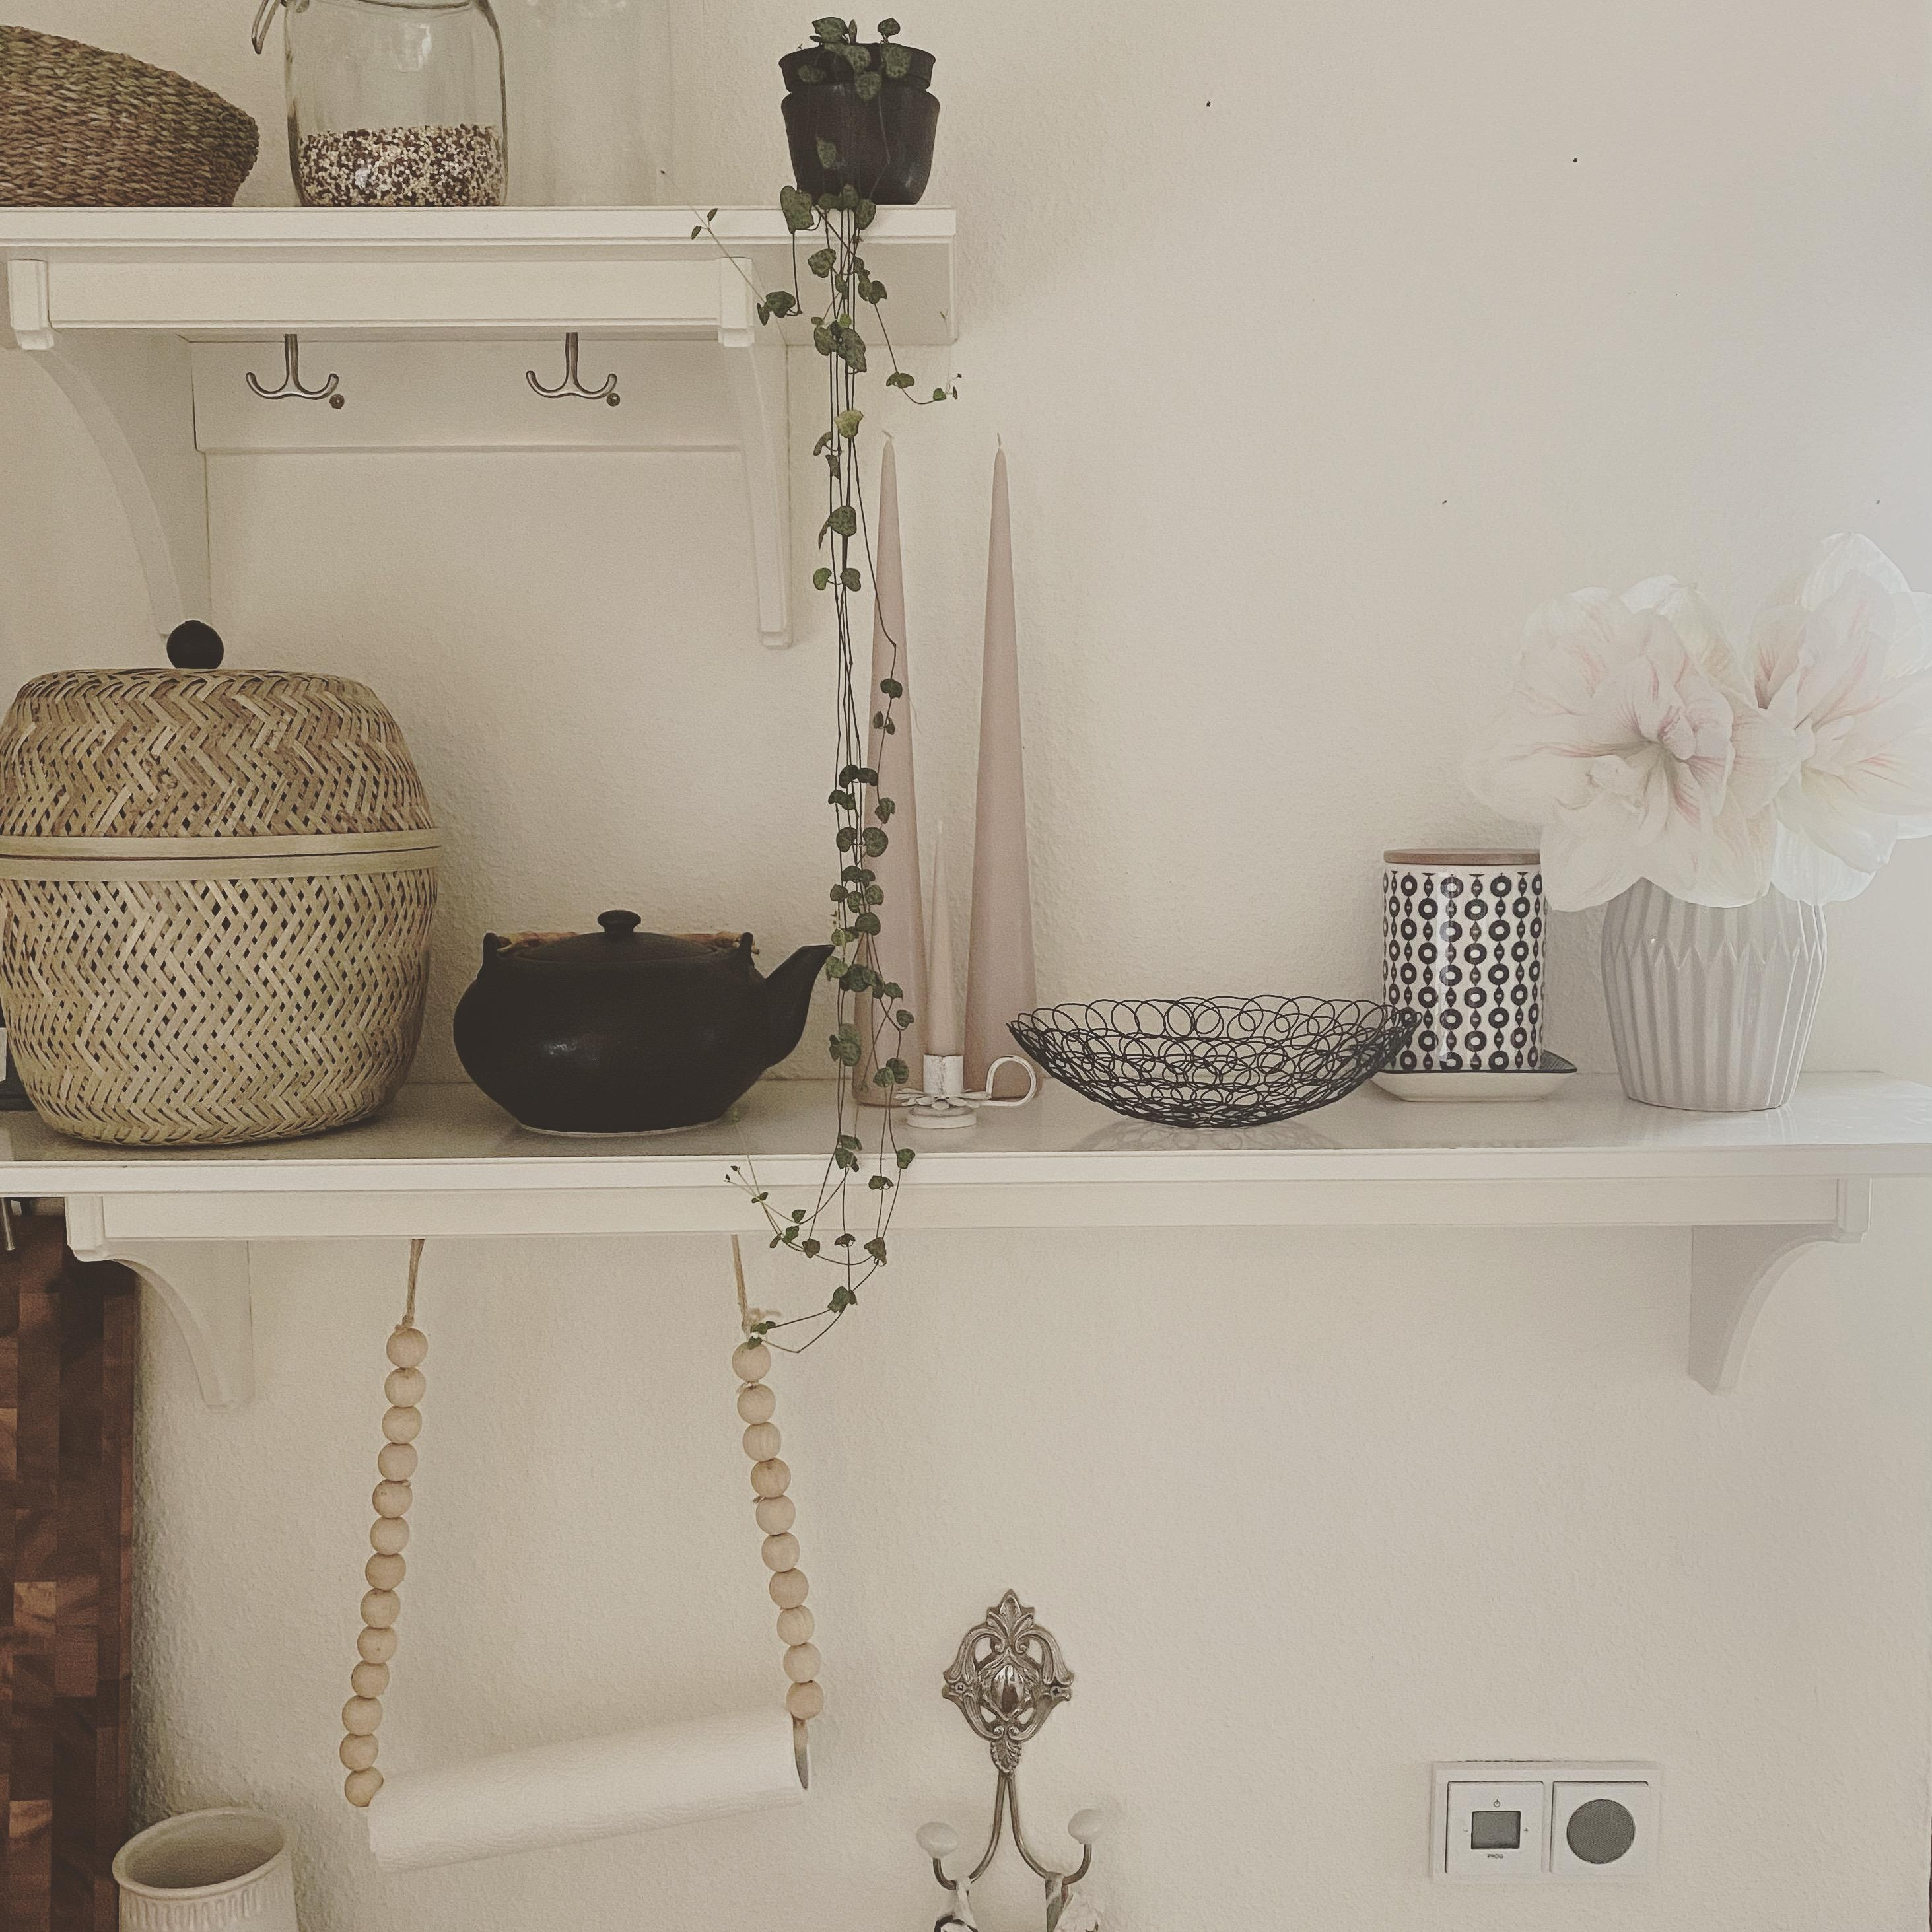 #kitchen#shelfie#details#homedecor#kücheninspo